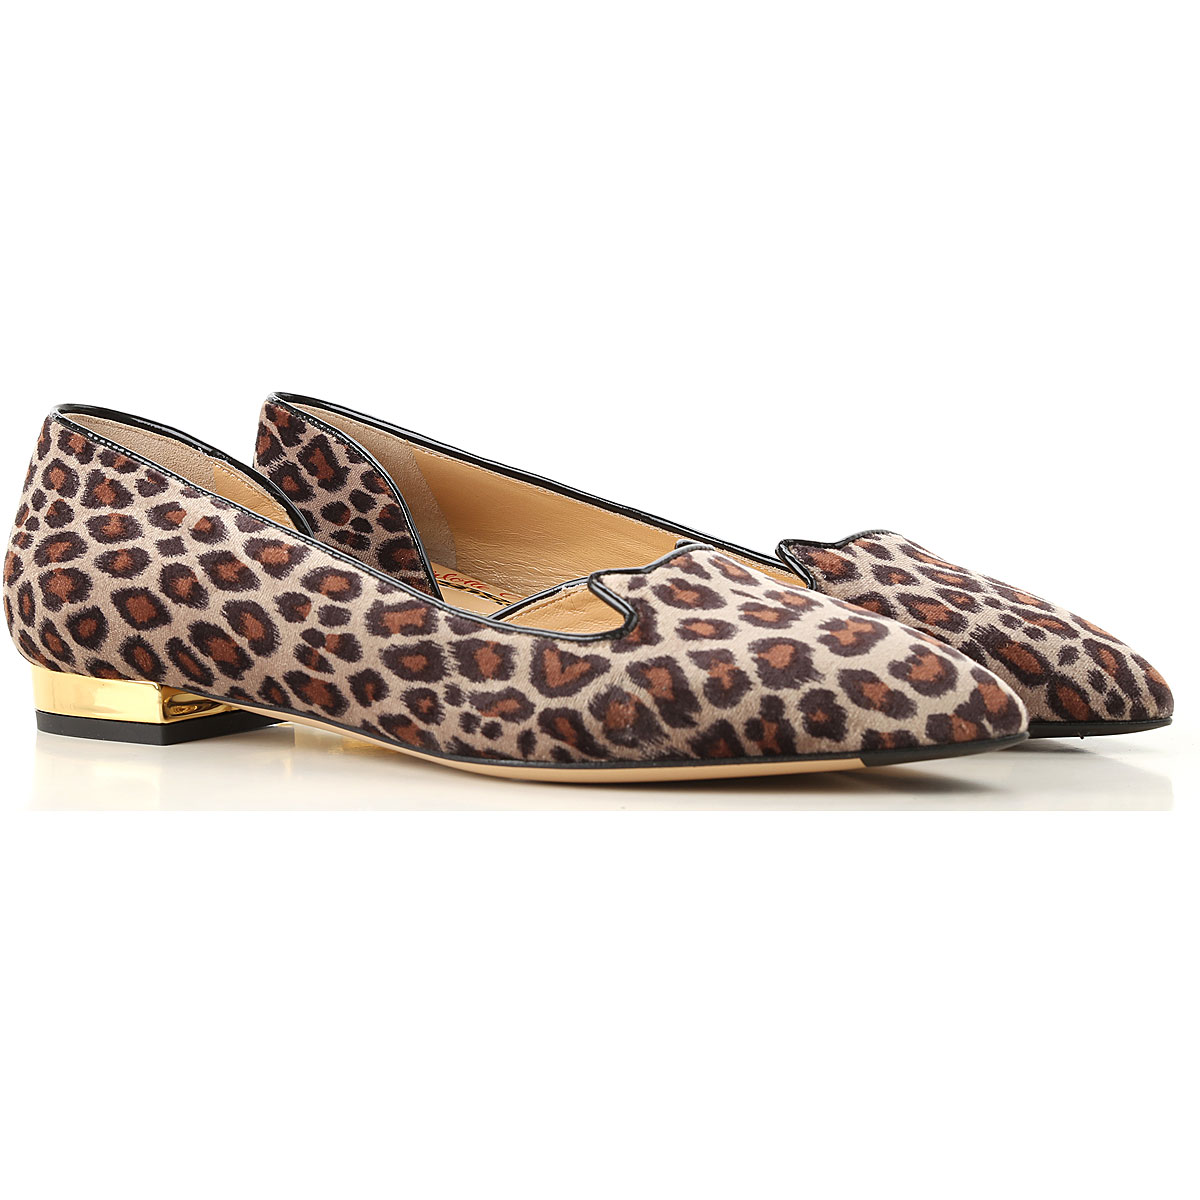 Image of Charlotte Olympia Ballet Flats Ballerina Shoes for Women, Leopard, Fur, 2017, 6 7 8 9